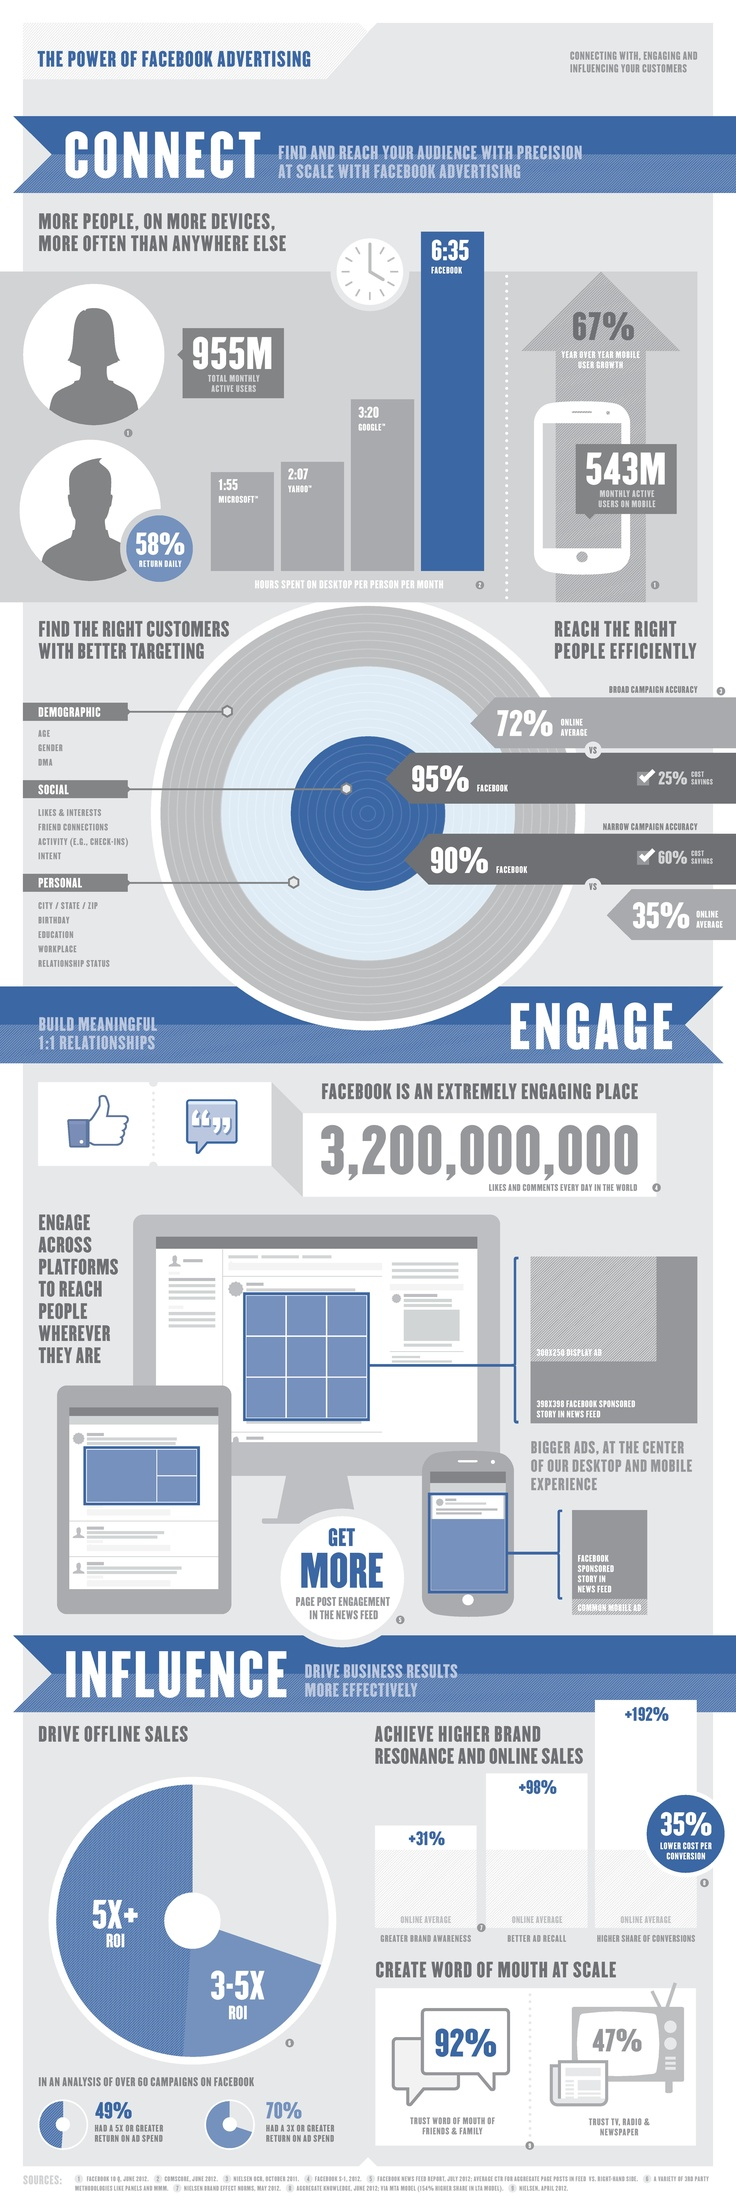 543 mio Monthly active users on mobile on facebook